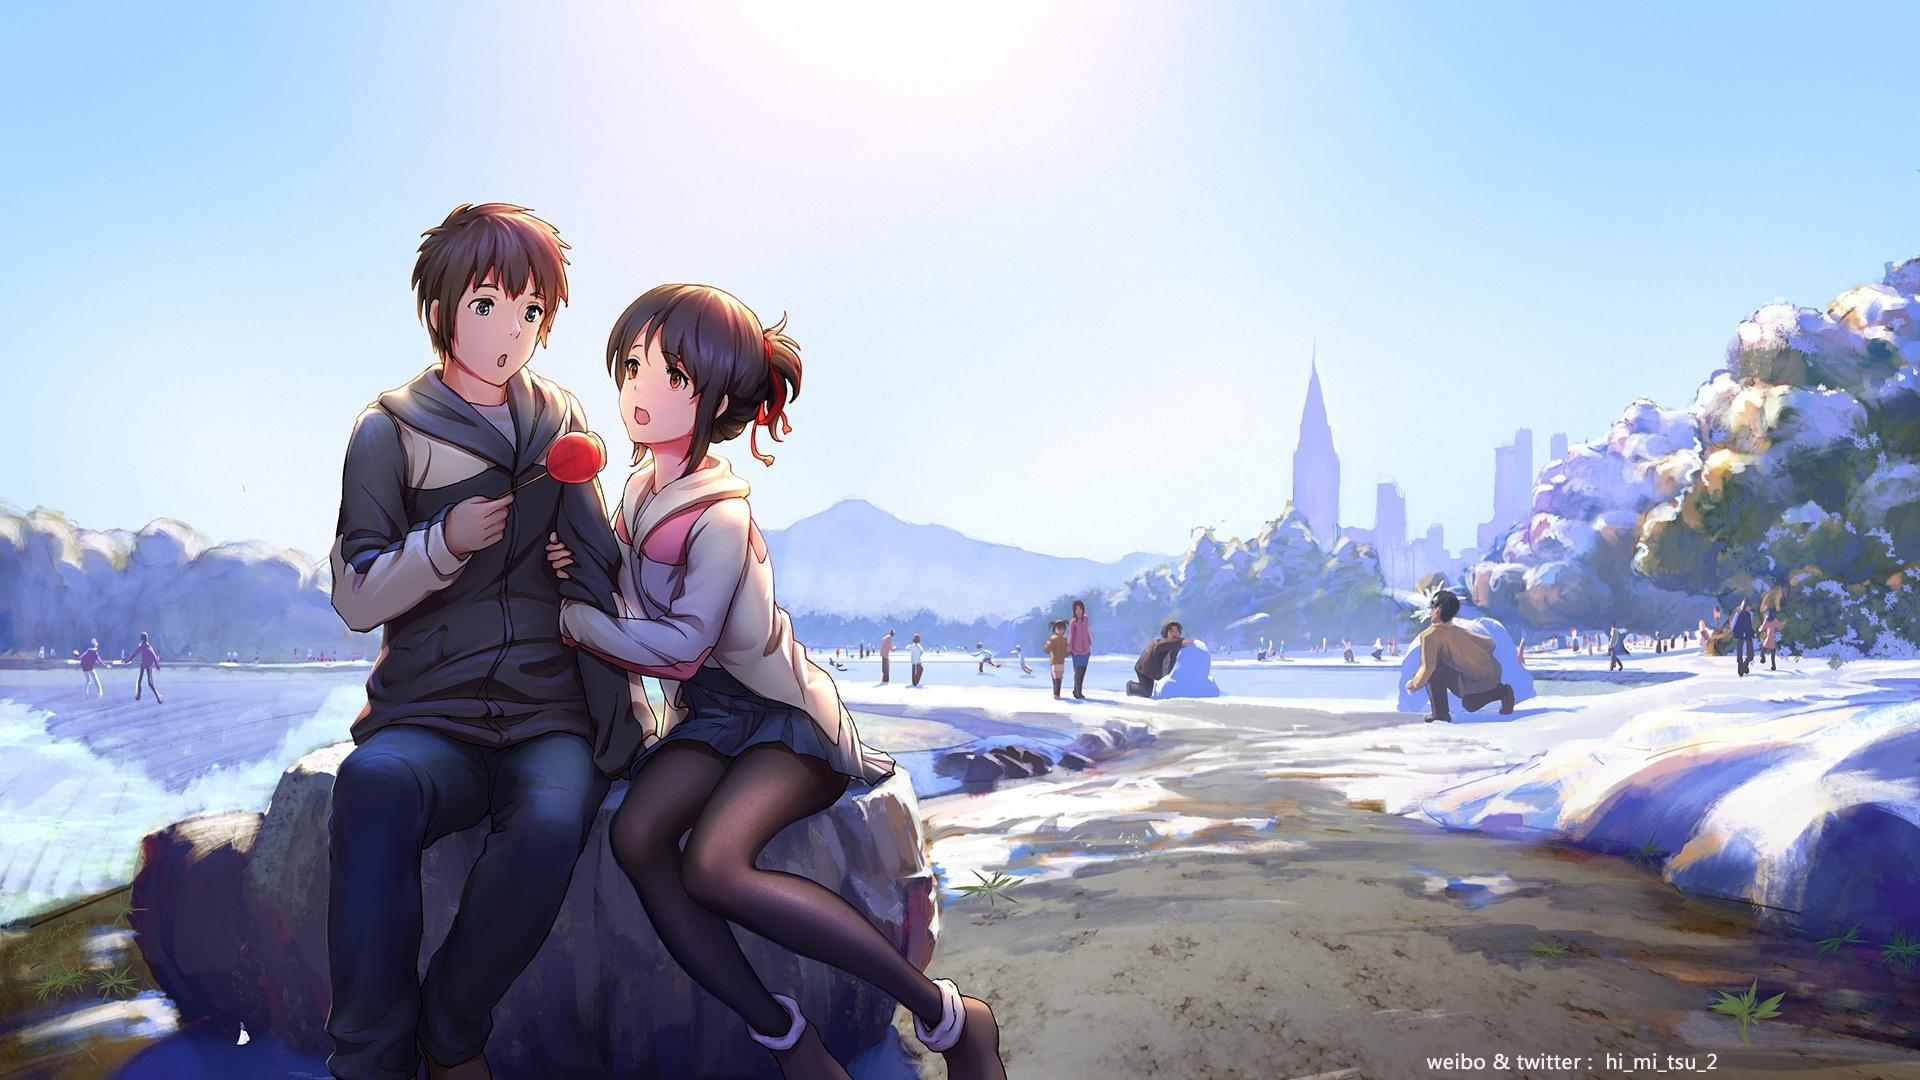 Kimi No Na Wa Wallpaper Hd , HD Wallpaper & Backgrounds